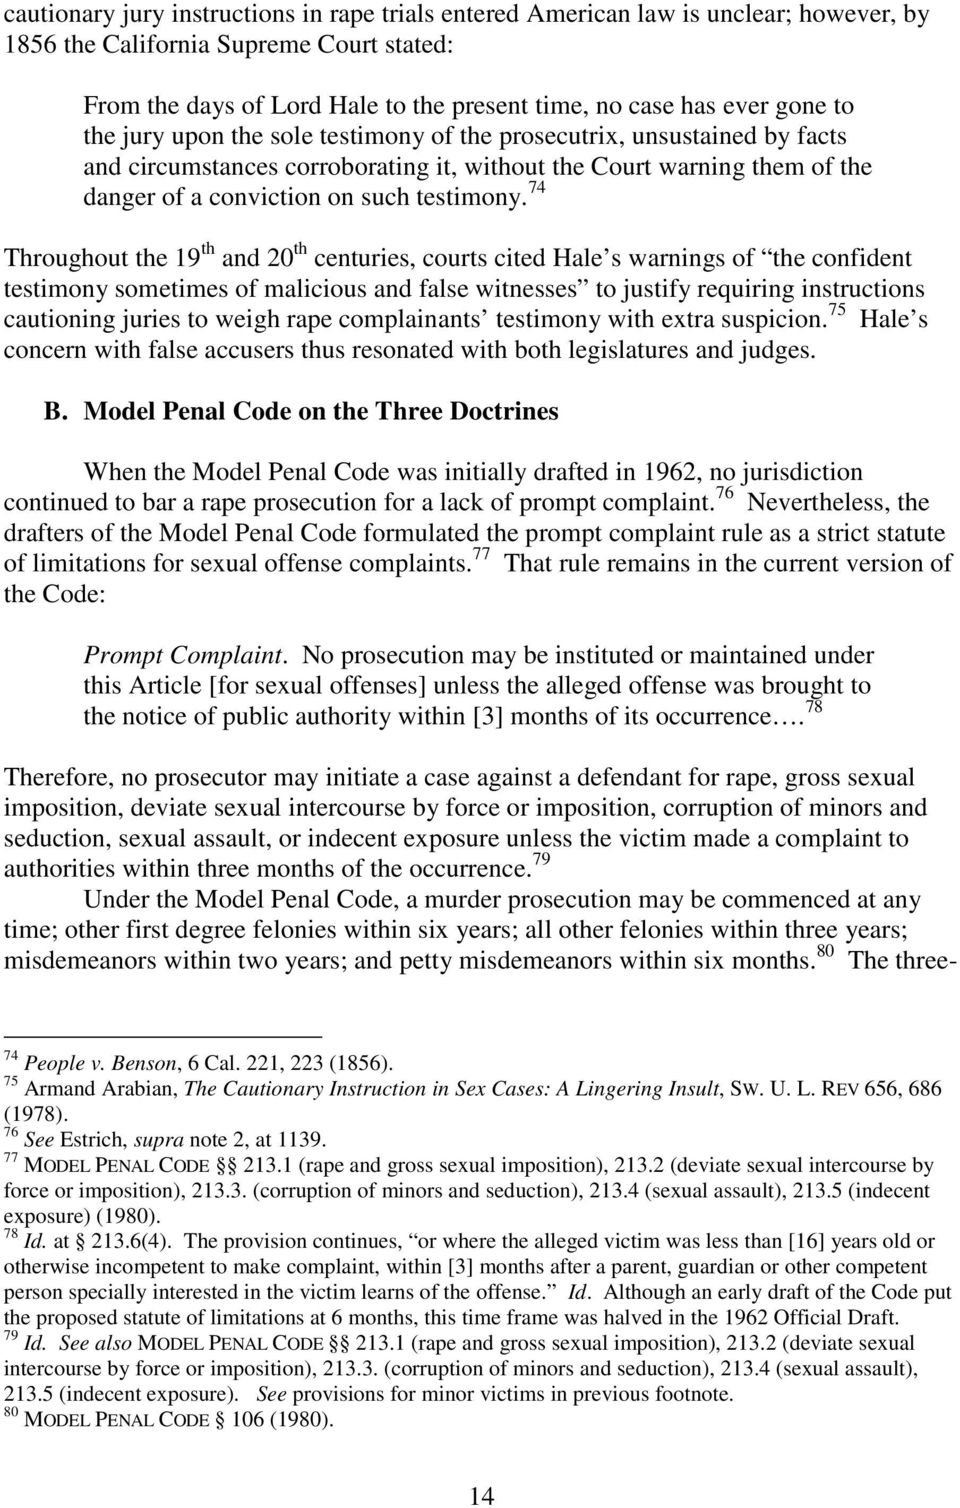 74 Throughout the 19 th and 20 th centuries, courts cited Hale s warnings of the confident testimony sometimes of malicious and false witnesses to justify requiring instructions cautioning juries to